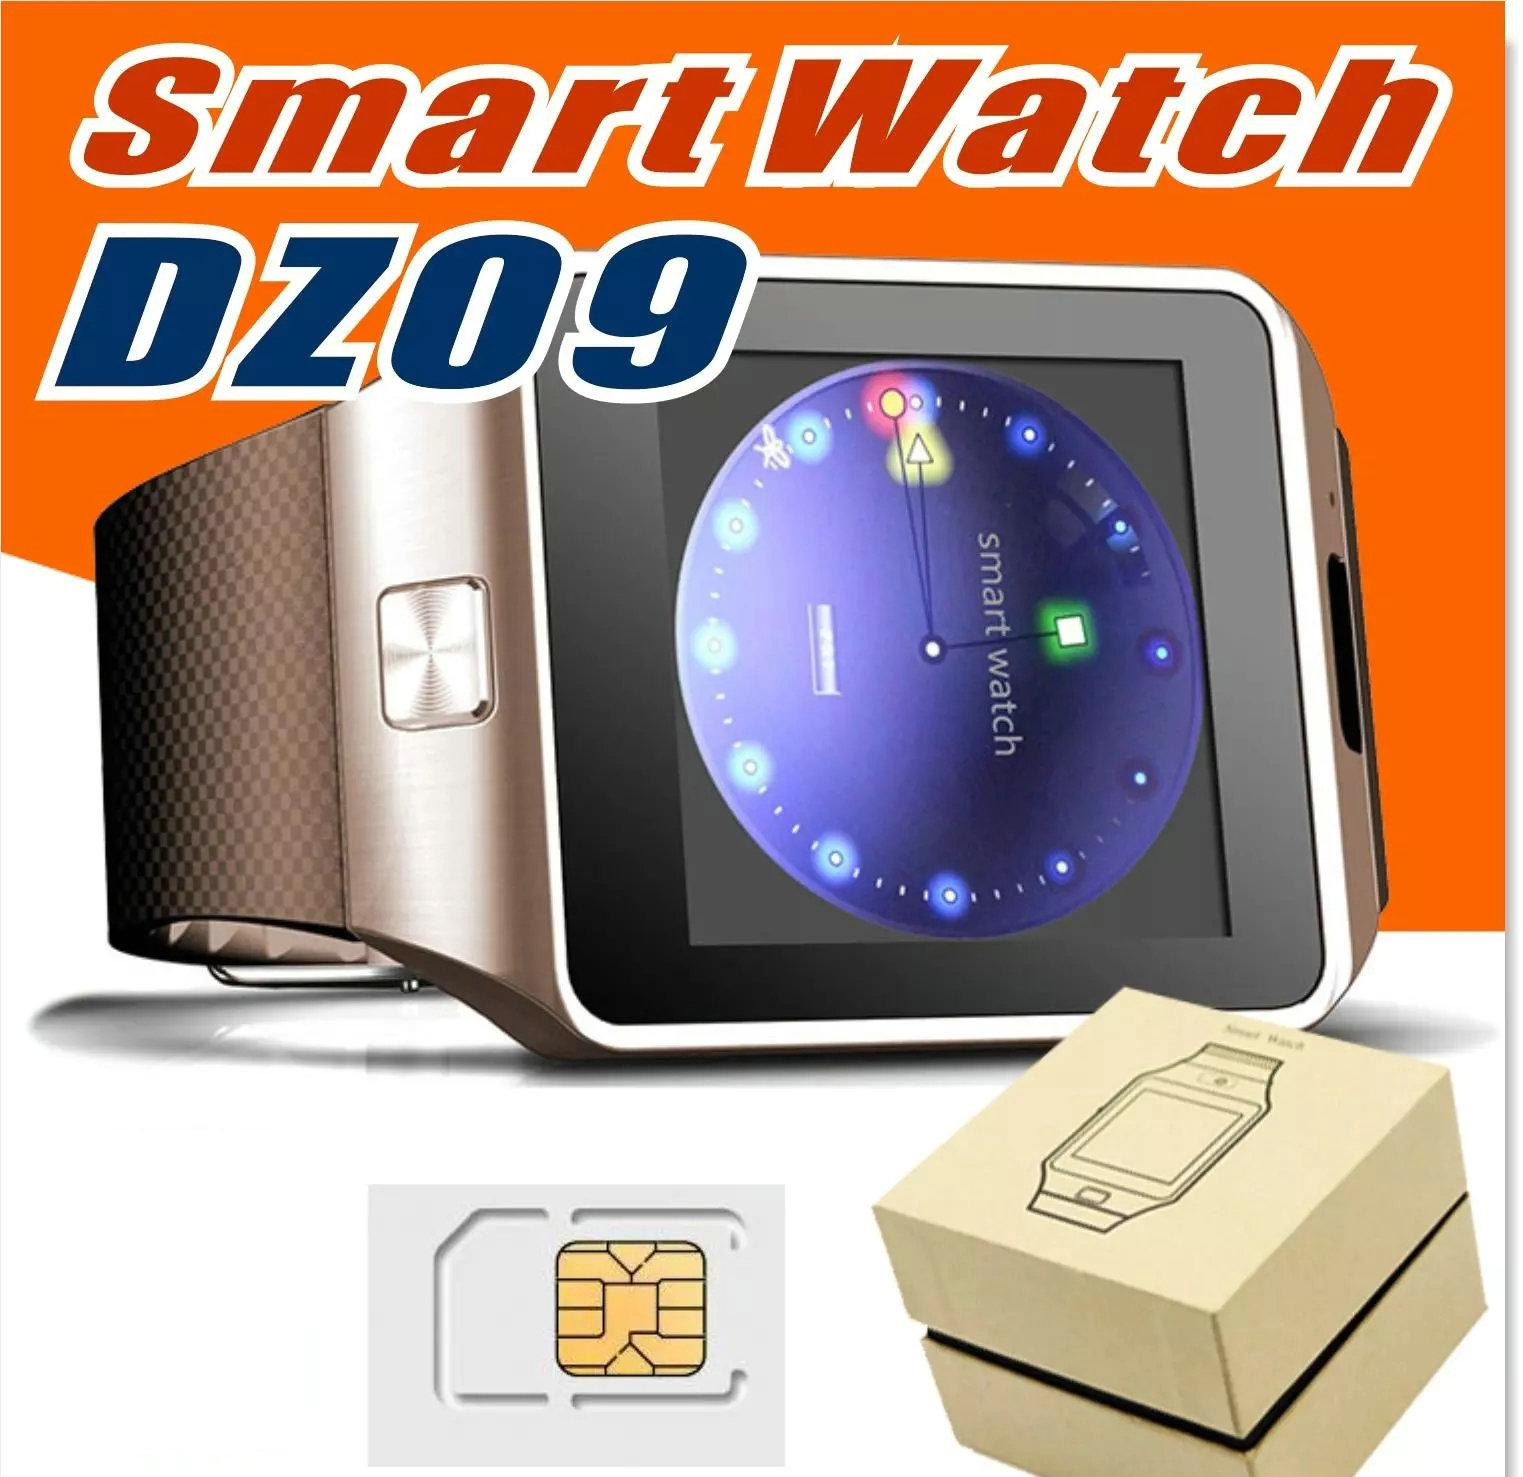 Dz09 Smart Watch Gt08 U8 A1 Wrisbrand Android Smart Sim Intelligent Mobile Phone Watch Can Record The Sleep State Smart Watch Sb Dz09 Ios Smart Watches 2015